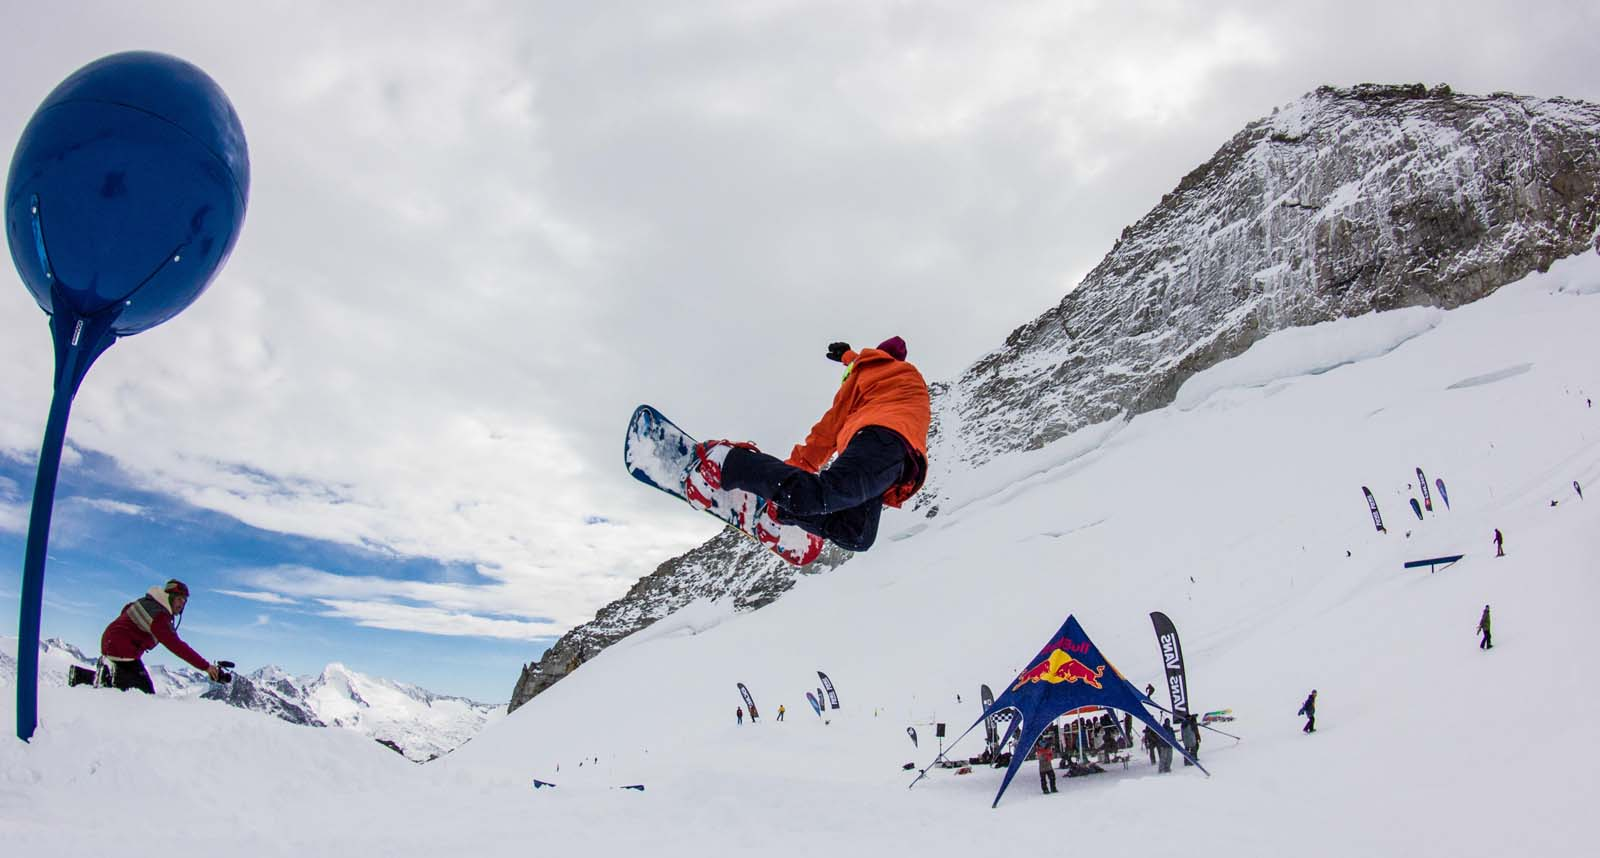 Zillertal Välley Rälley hosted by Ride Snowboards 2015 / 2016 - Foto: Albert Binnekade